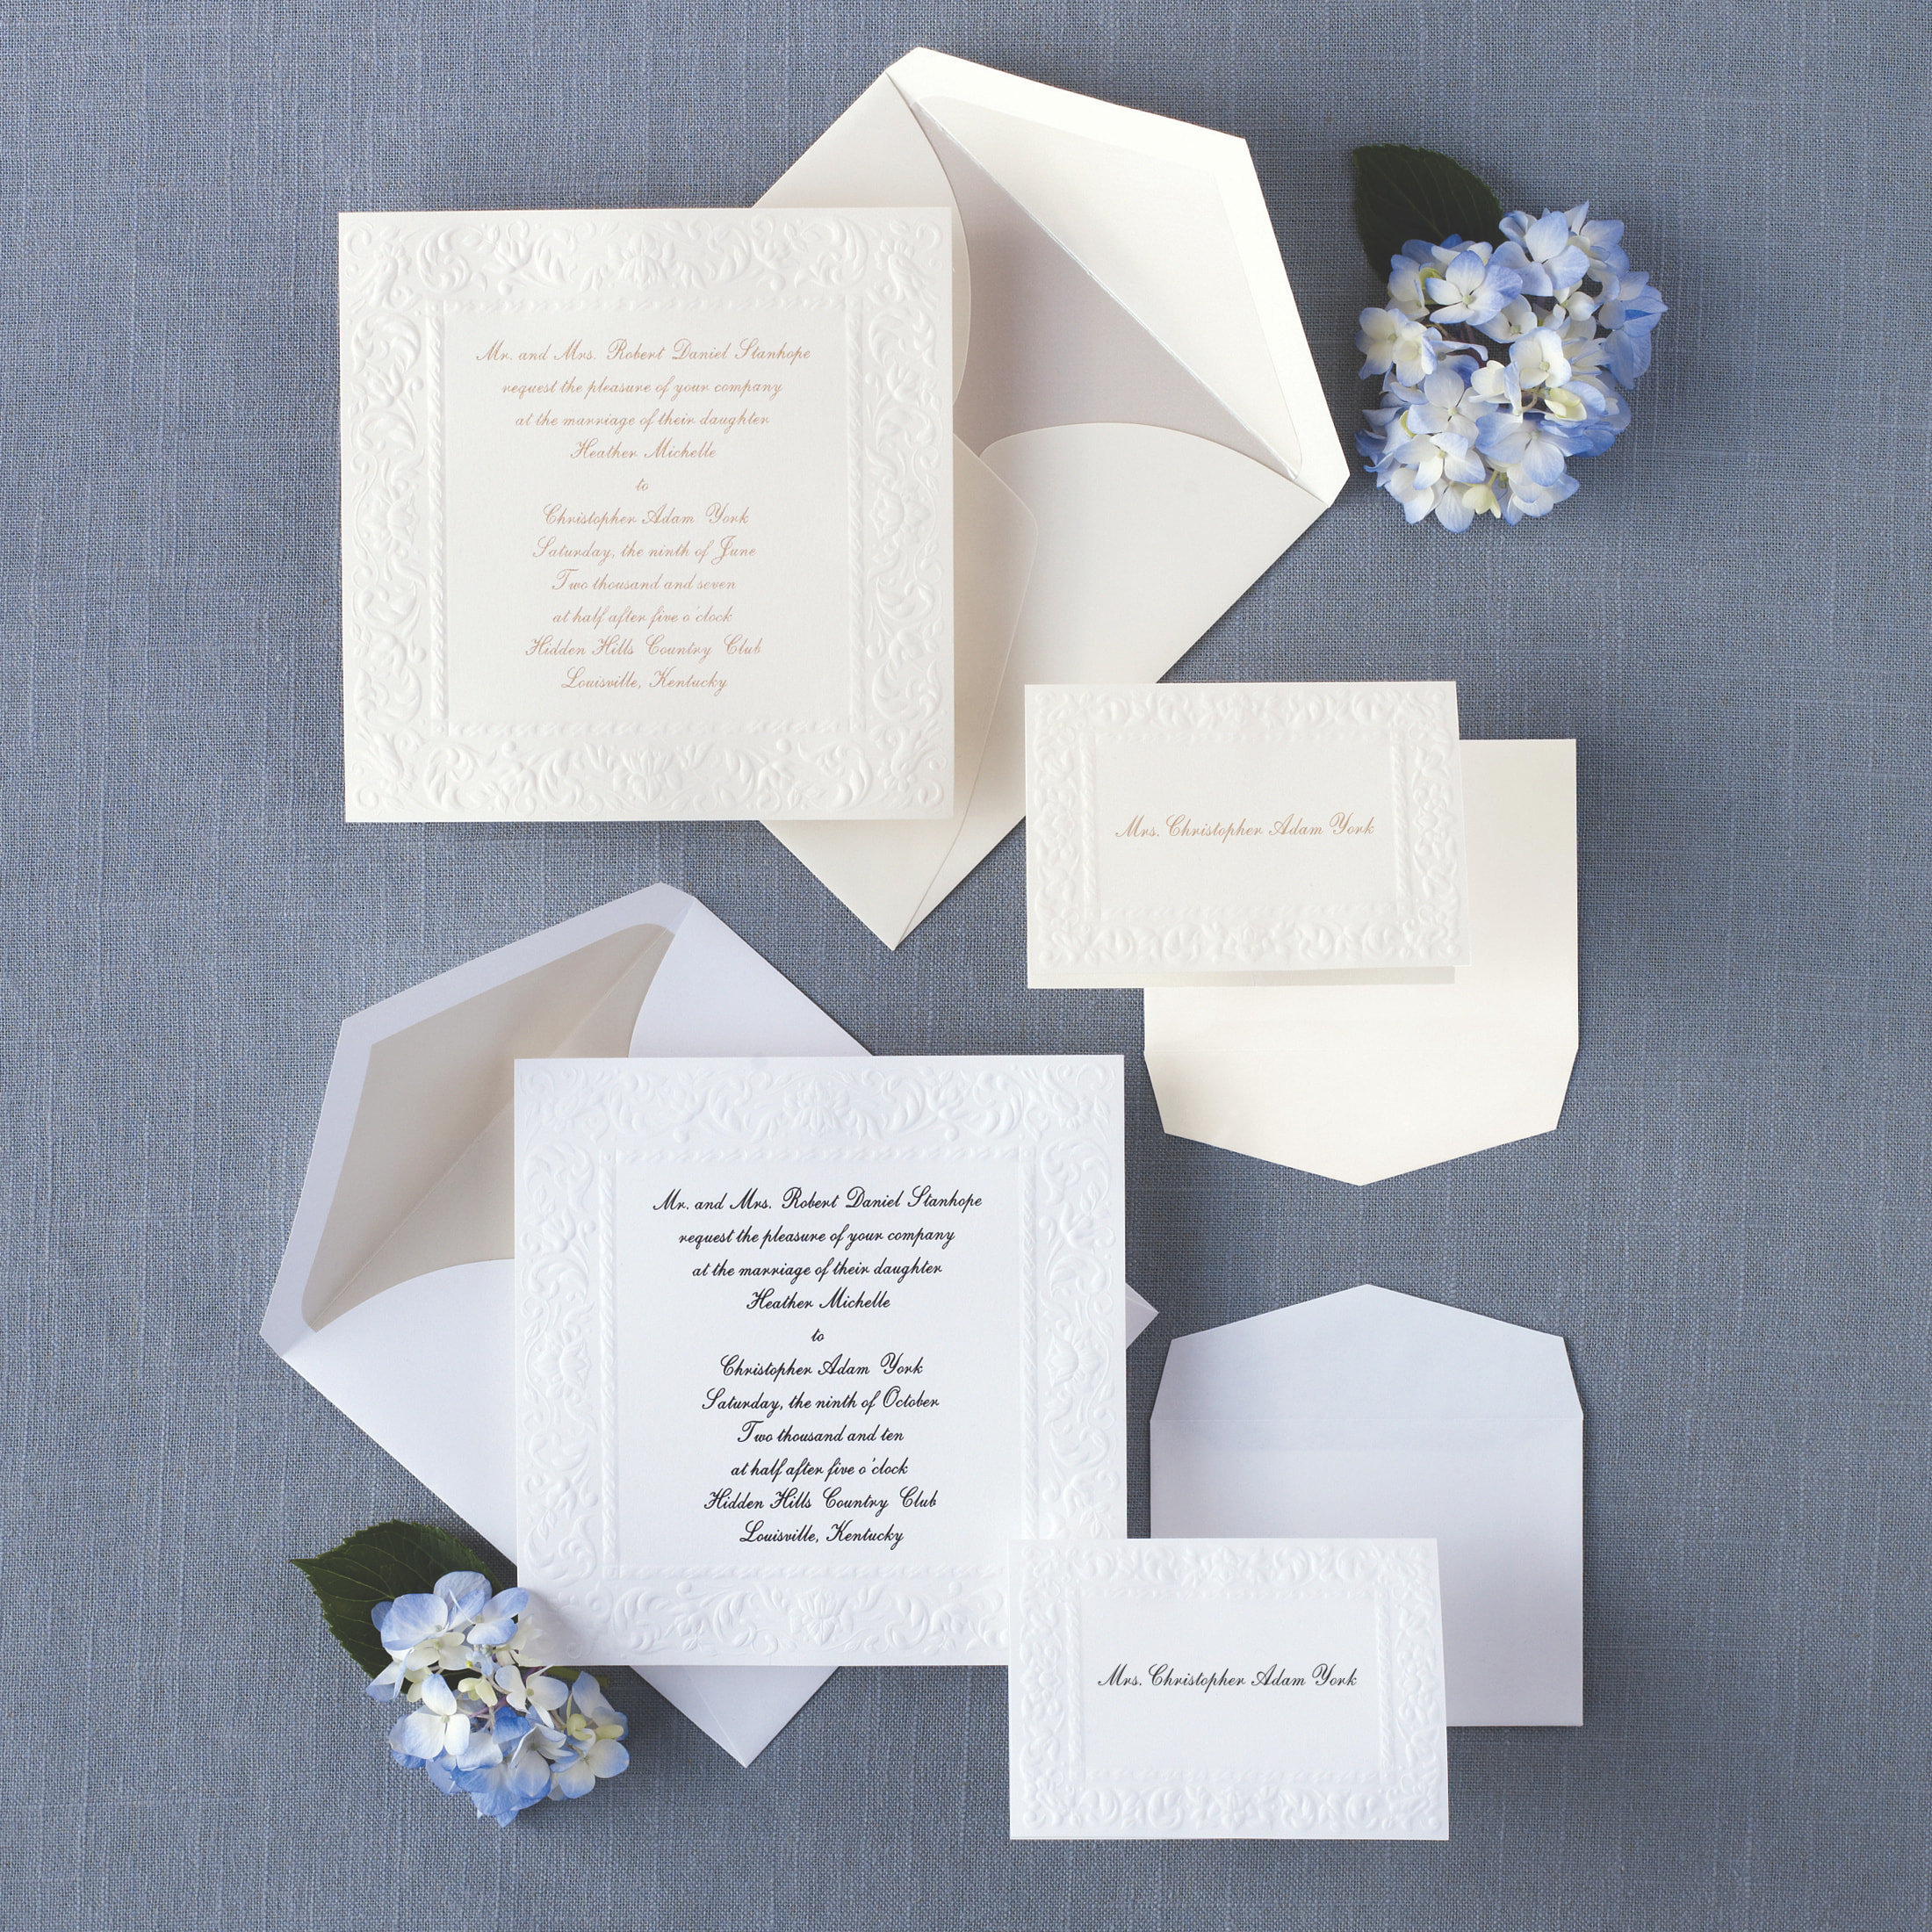 Old World Elegance Wedding Invitation Embossed Wedding Invitations – Wedding Invitations Embossed